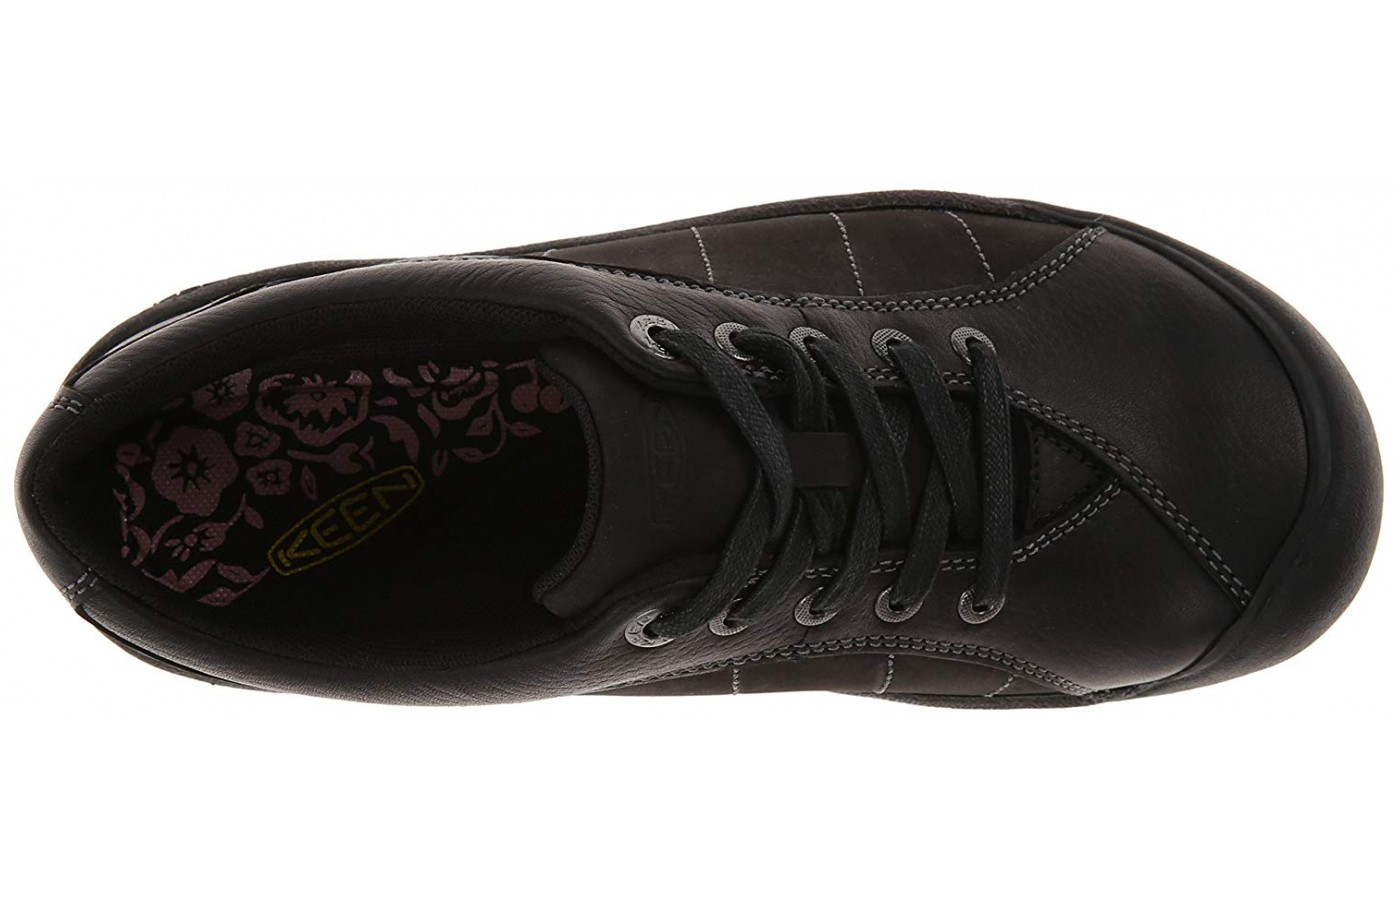 The shoe has Oxford style lacing.